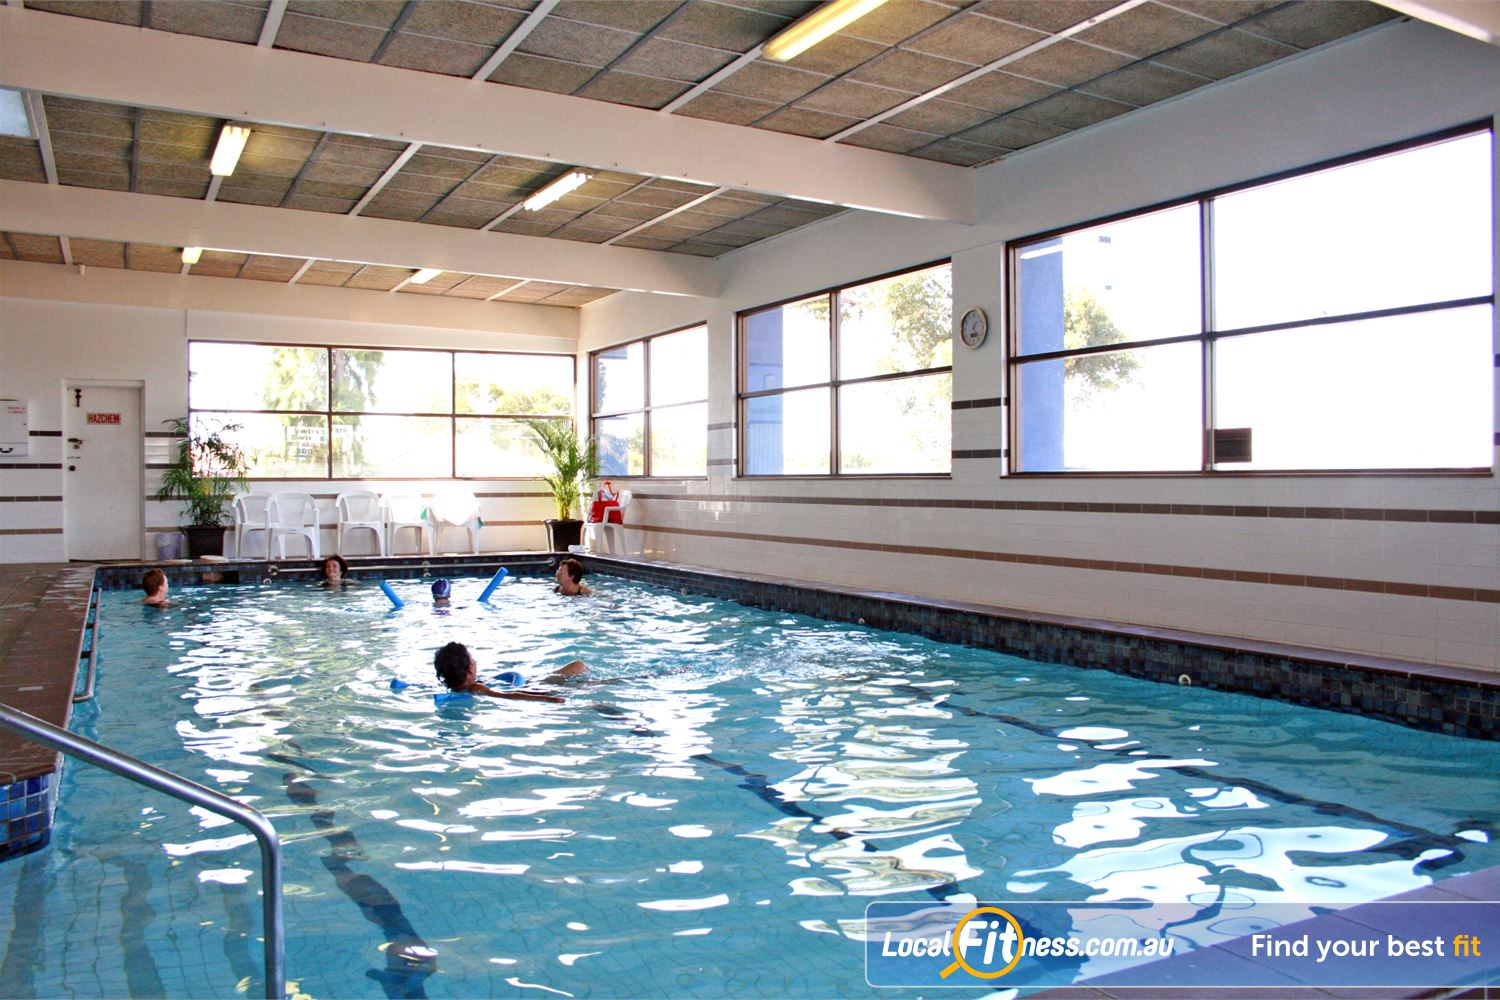 Goodlife Health Clubs Near Tarneit 15m indoor Hoppers Crossing swimming pool.